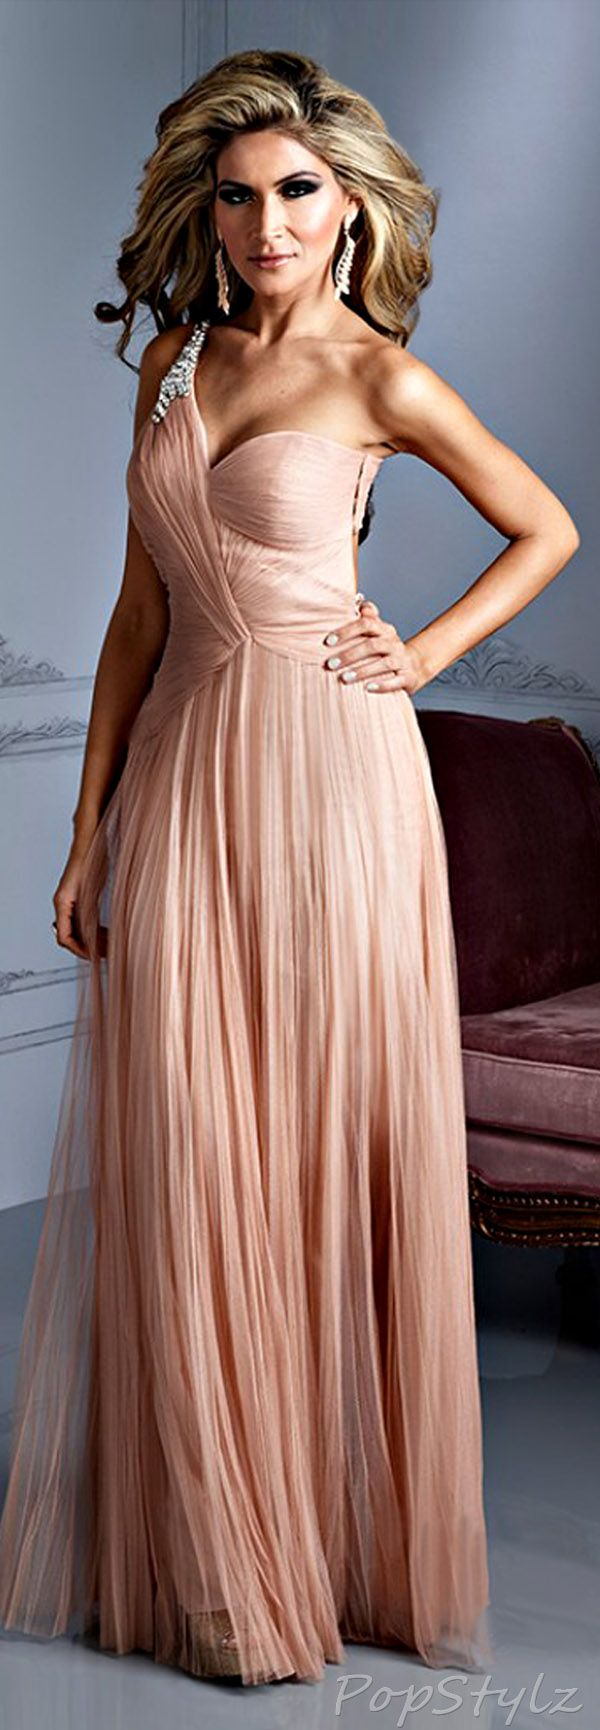 Terani Couture Gown - Evening Fall 2013